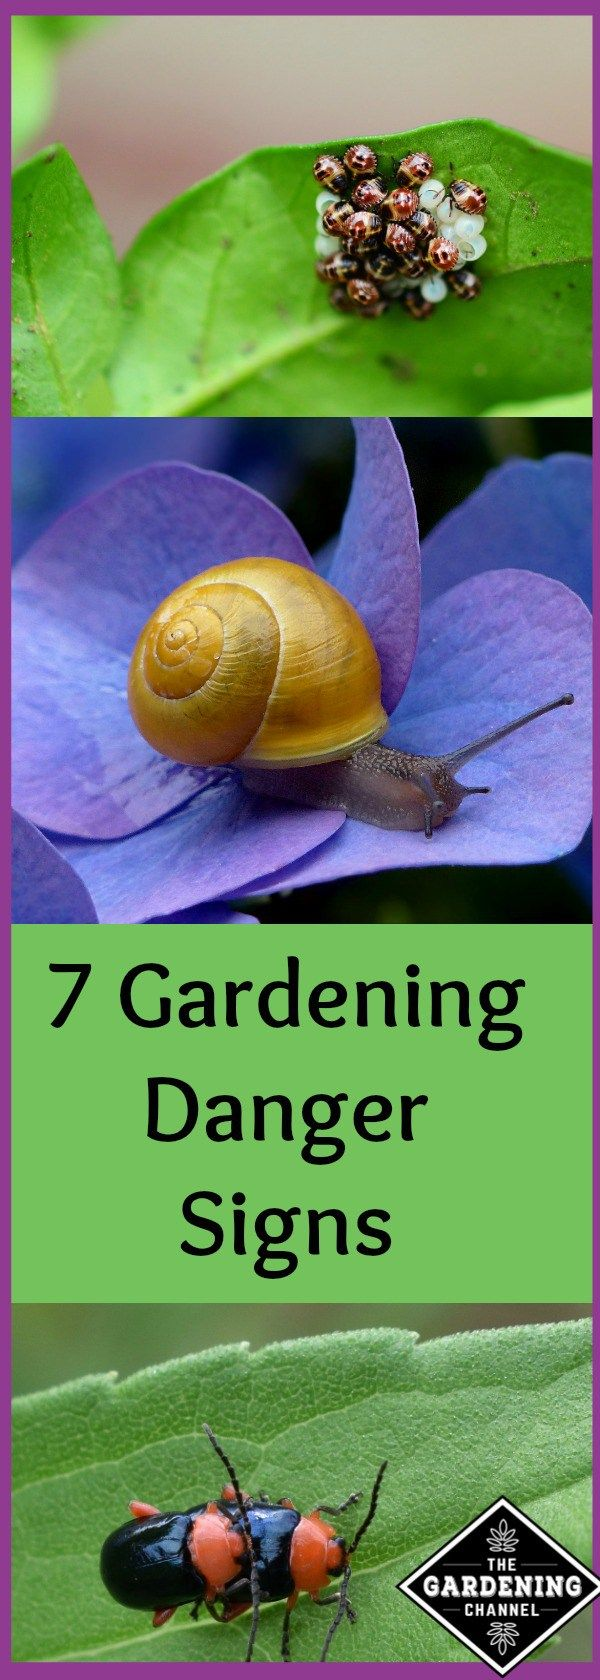 Gardening danger signs to look for, some are apparent in the winter.  Be on the lookout before spring planting.  Save your vegetables from these pests before it's too late.